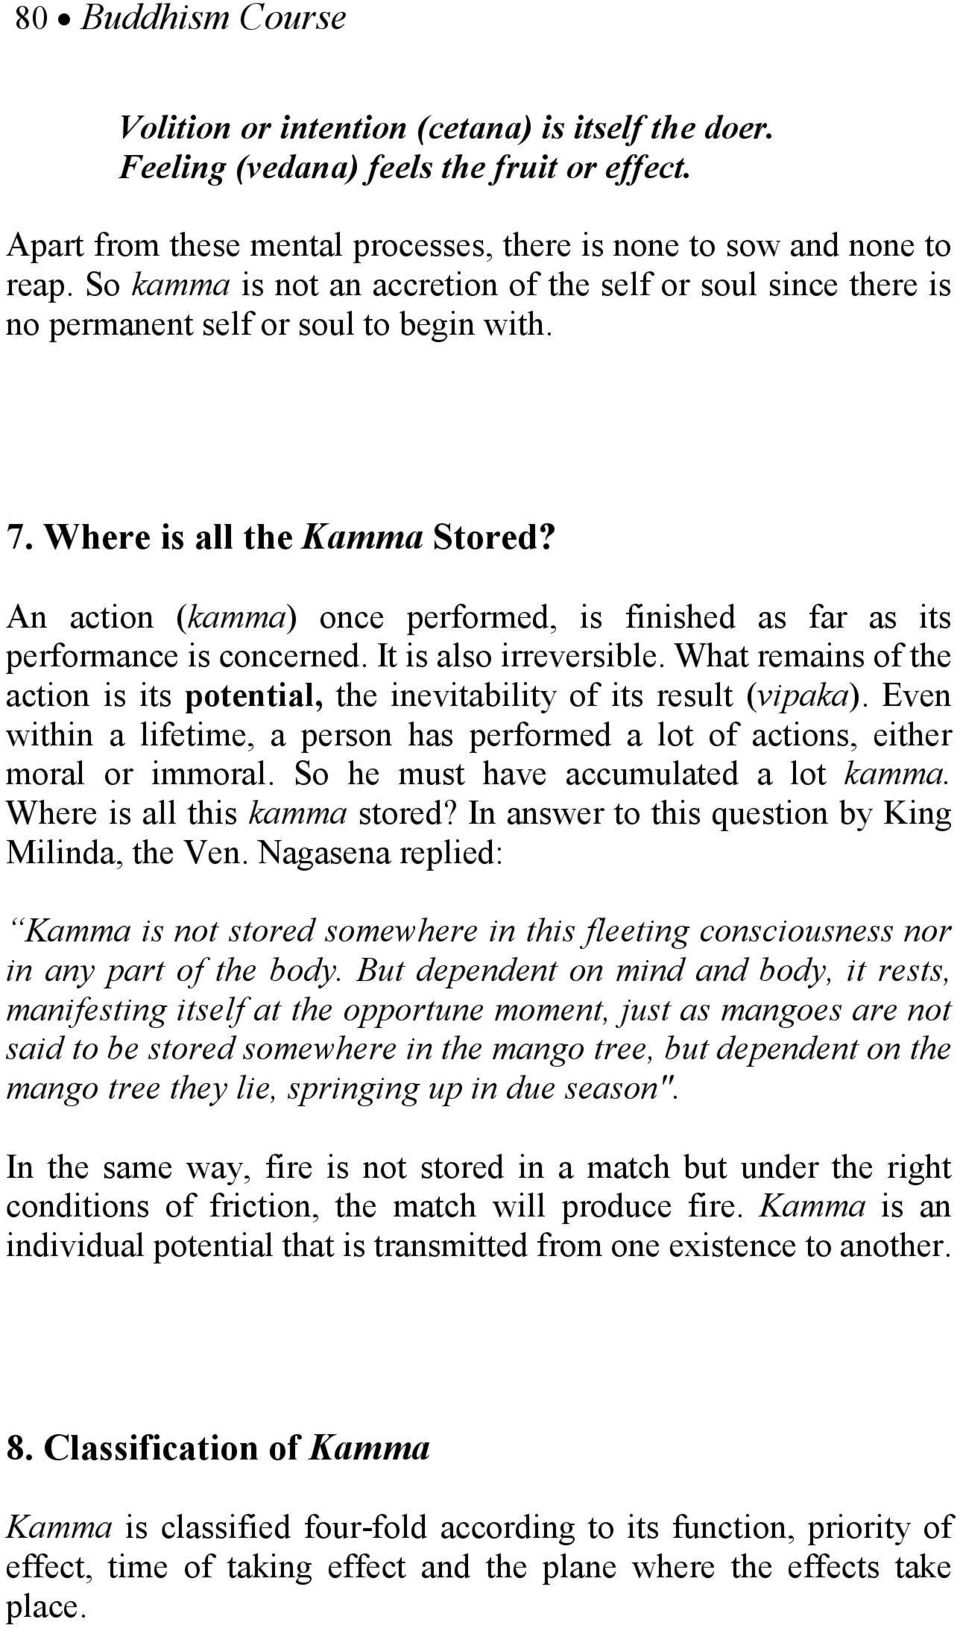 An action (kamma) once performed, is finished as far as its performance is concerned. It is also irreversible. What remains of the action is its potential, the inevitability of its result (vipaka).